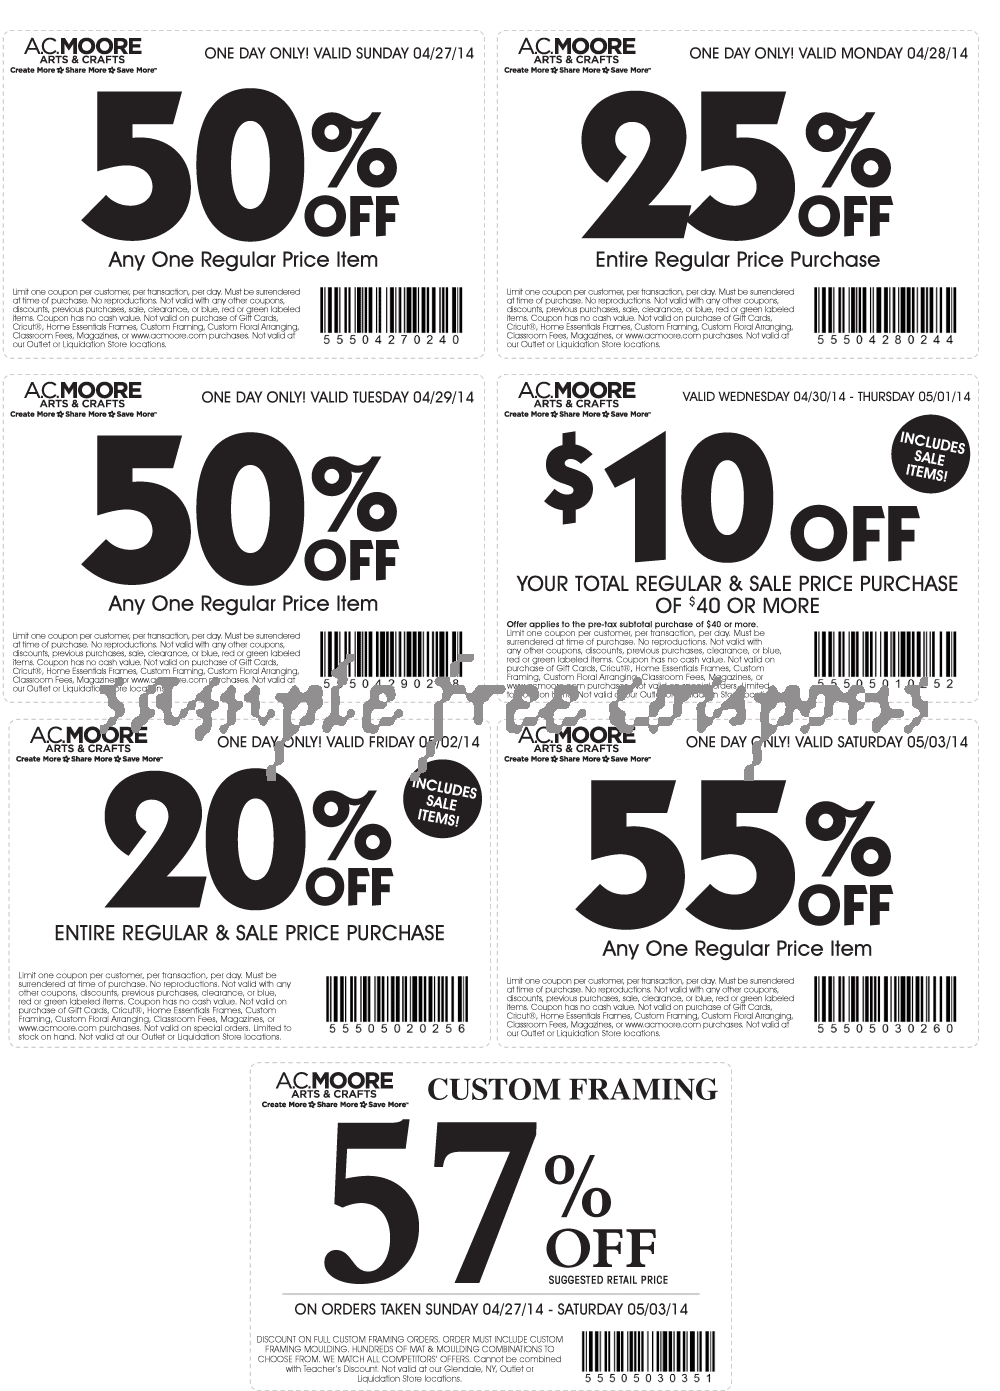 photo about Ac Moore Printable Coupon Blogspot identify Coupon codes for ac moore printable : Banners discount codes